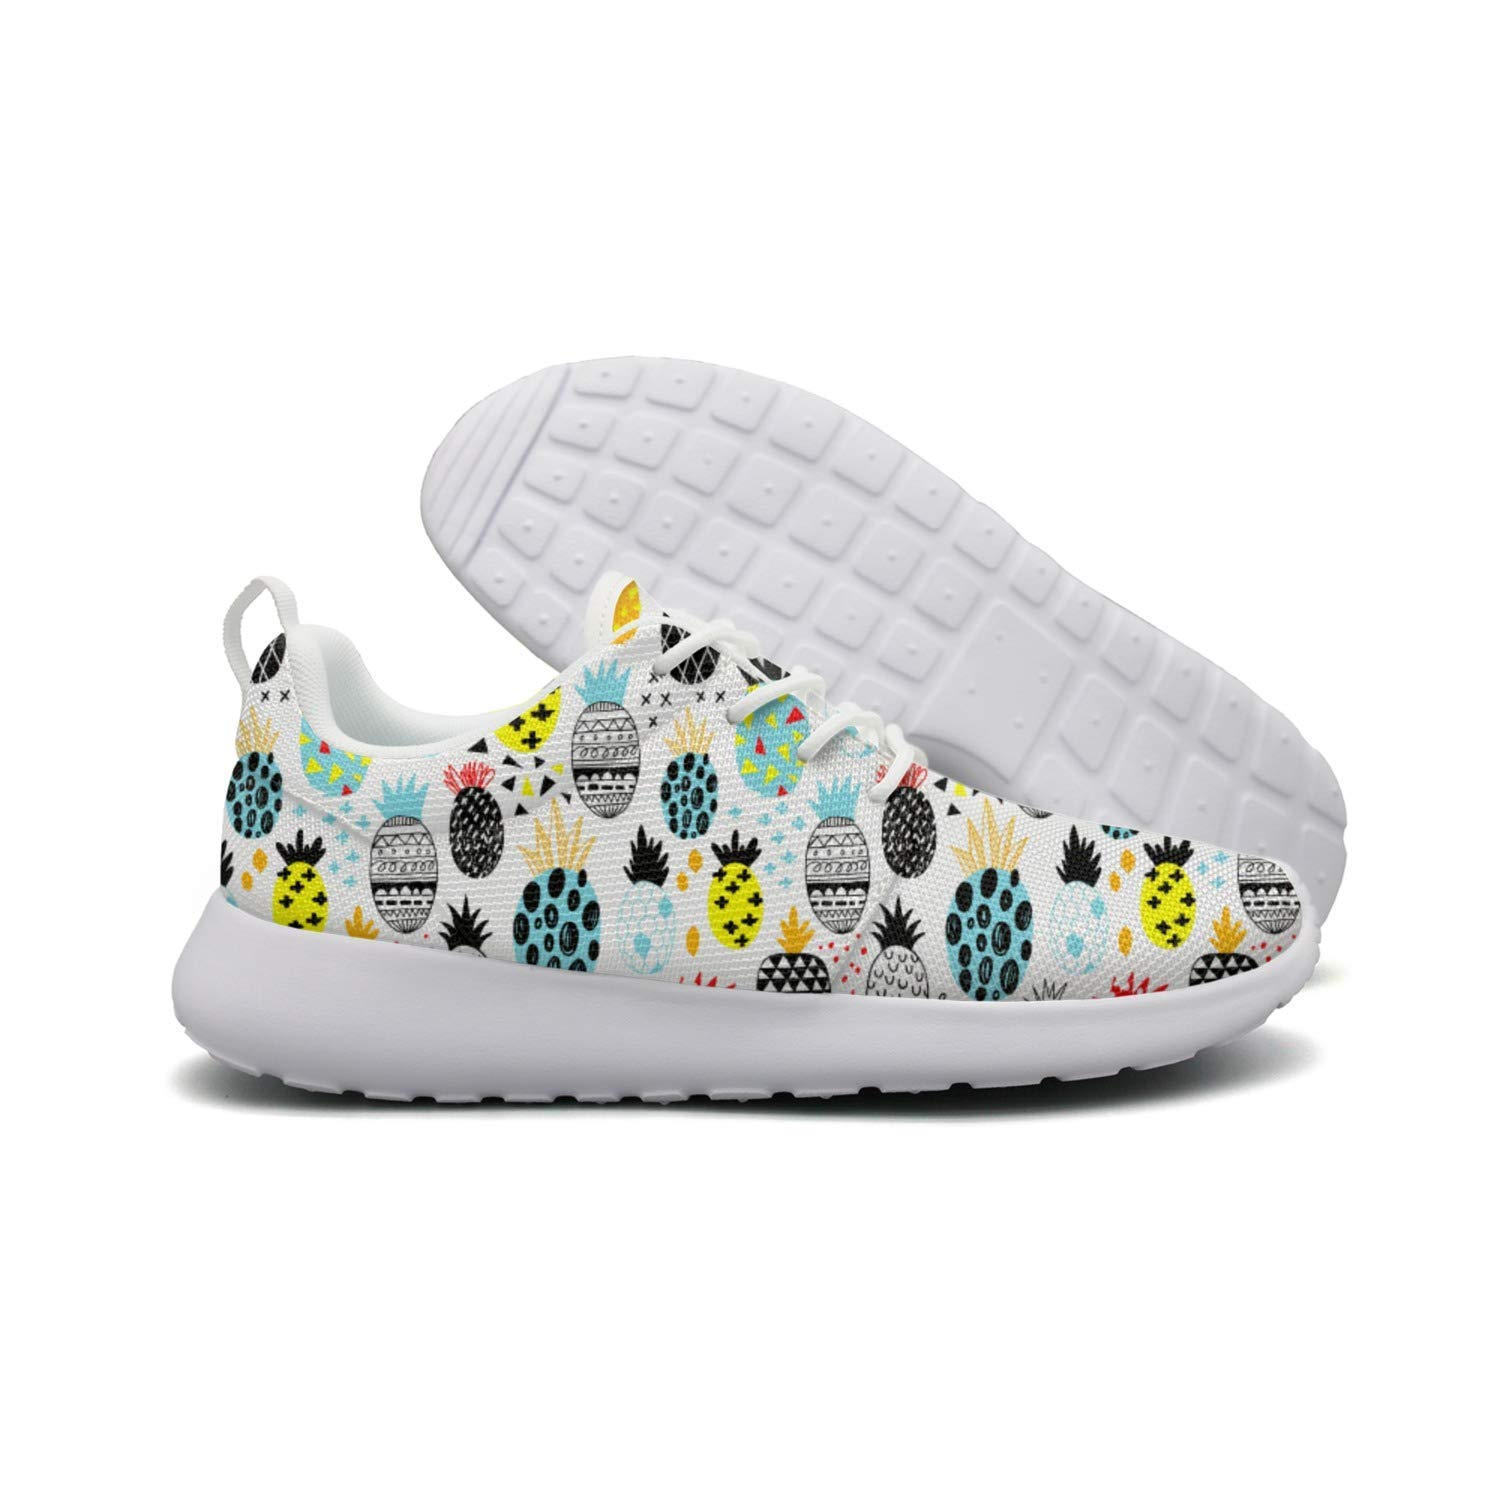 lingxxshow Be a Cool Pineapple Cool Print Women s Sports Running Shoes  Casual Lightweight Athletic Sneakers 9faf9f732